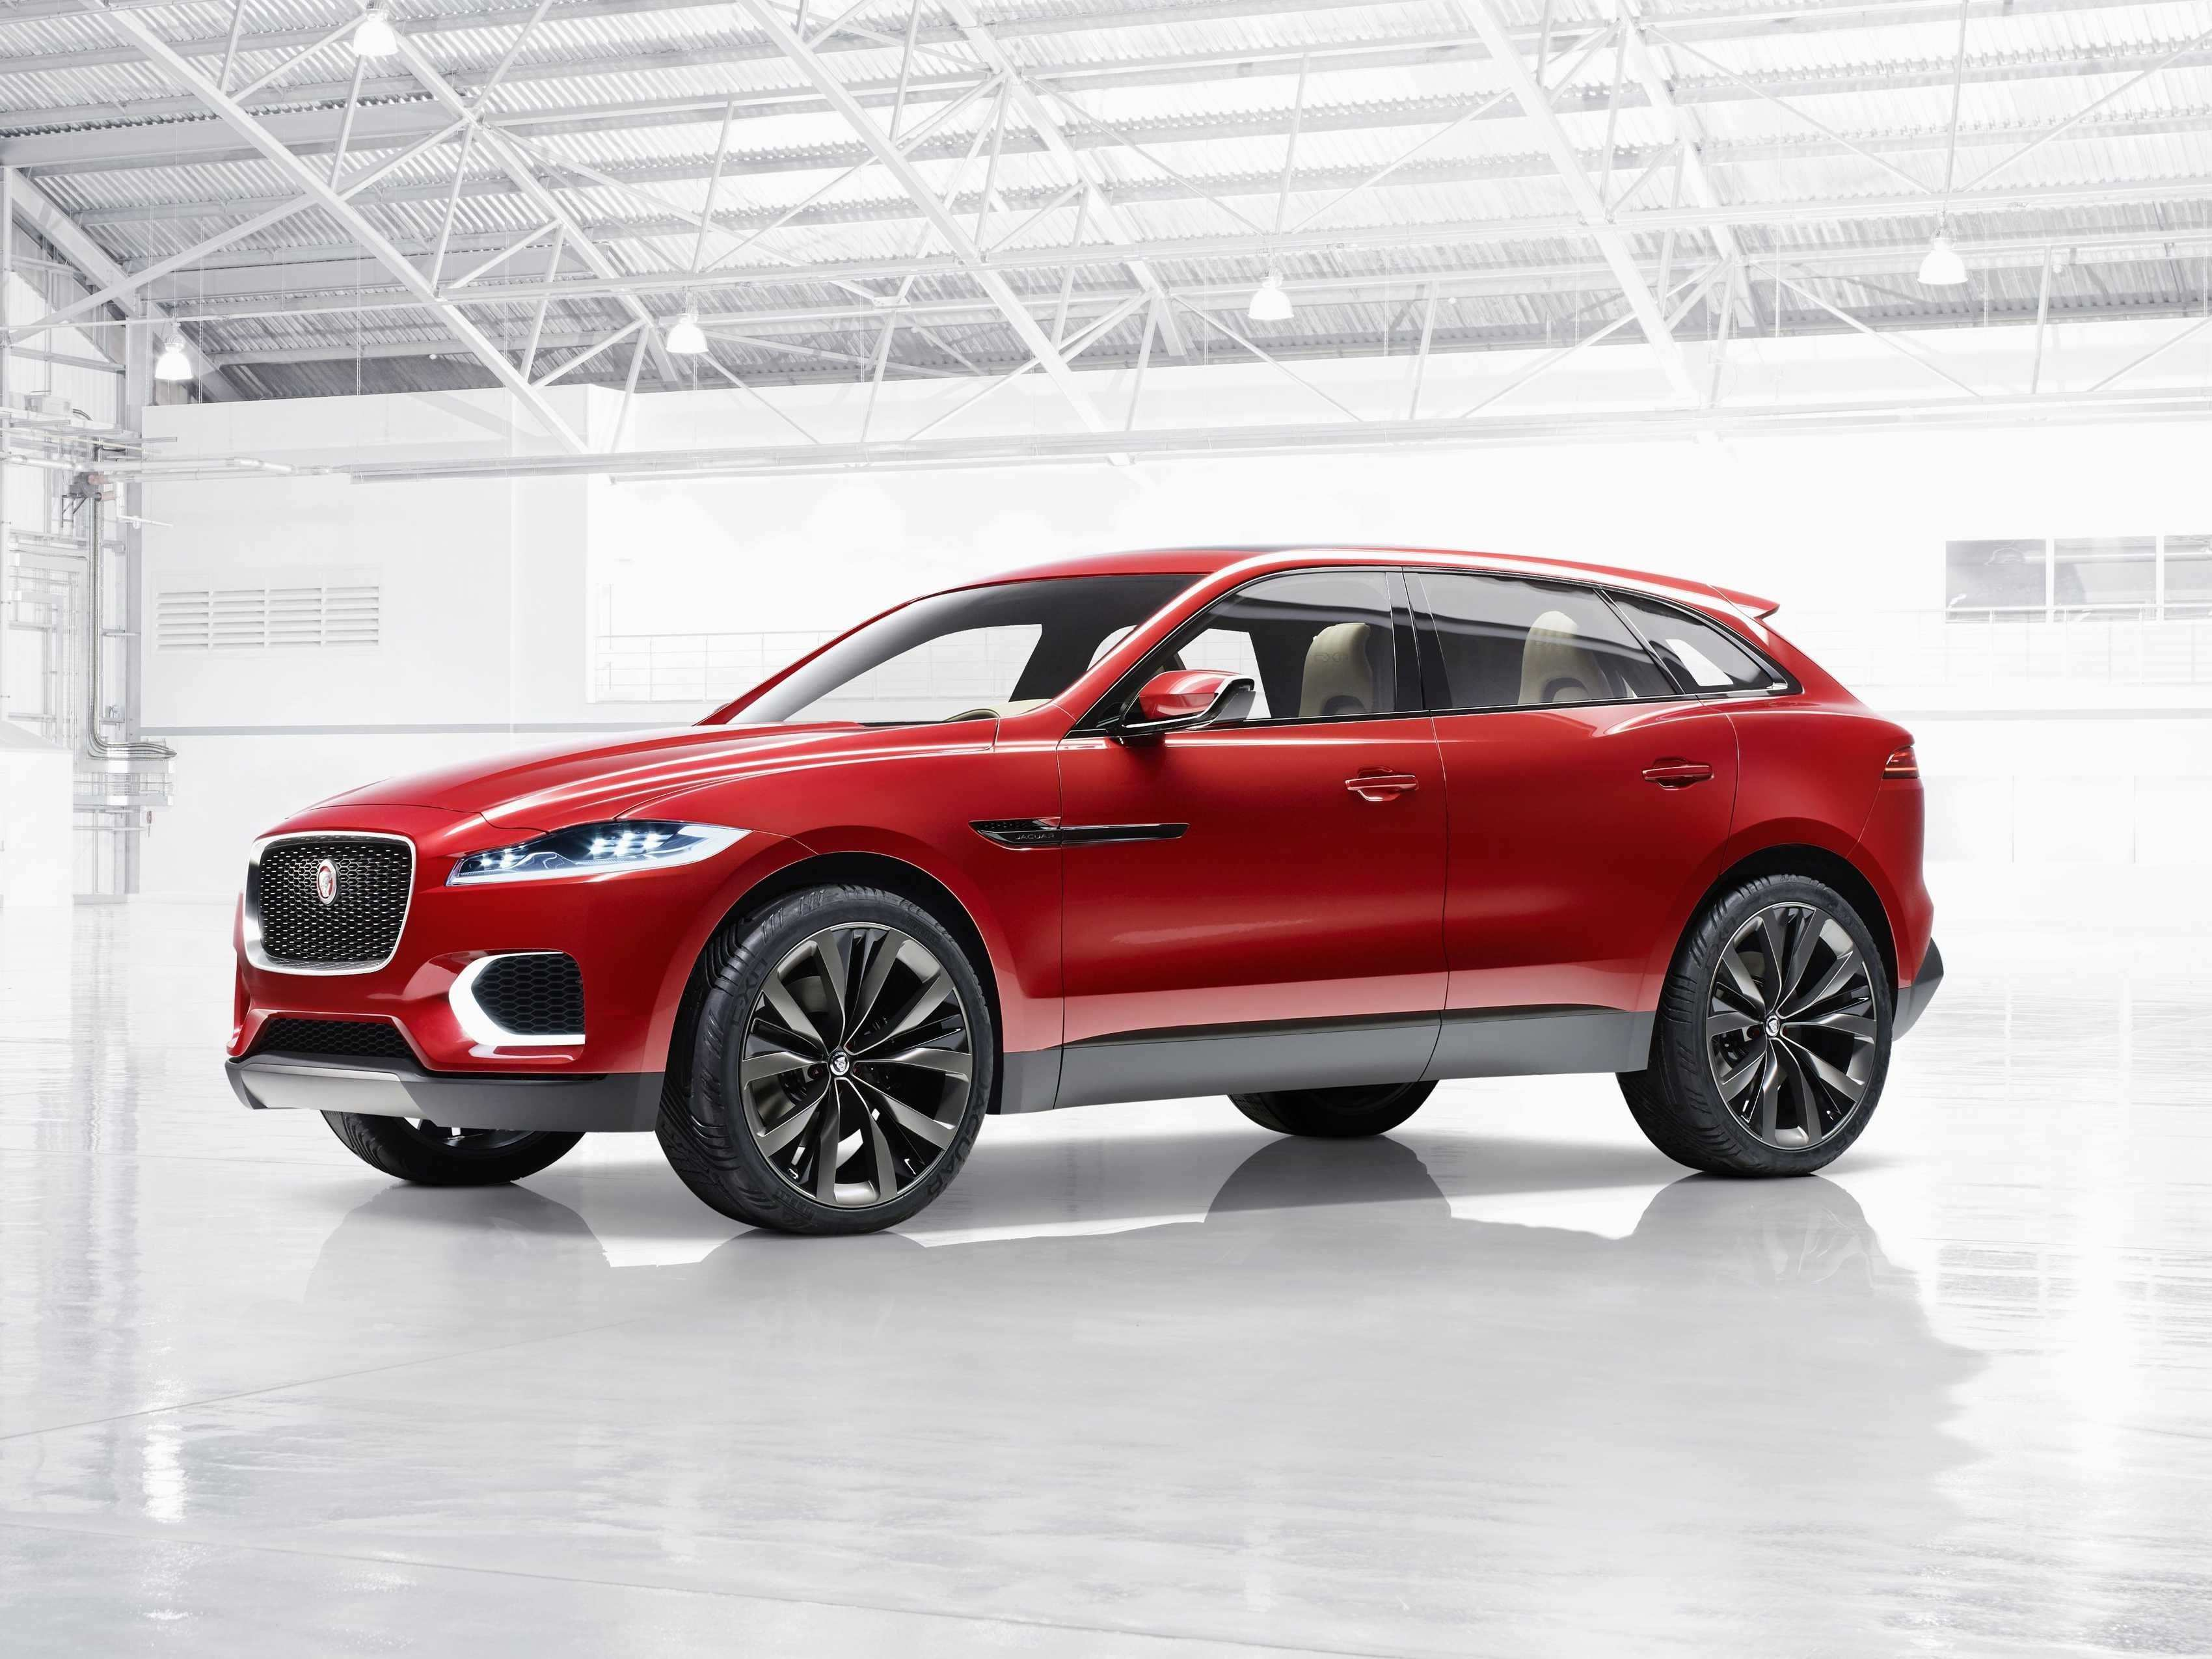 47 All New 2020 Jaguar XQs Price And Release Date